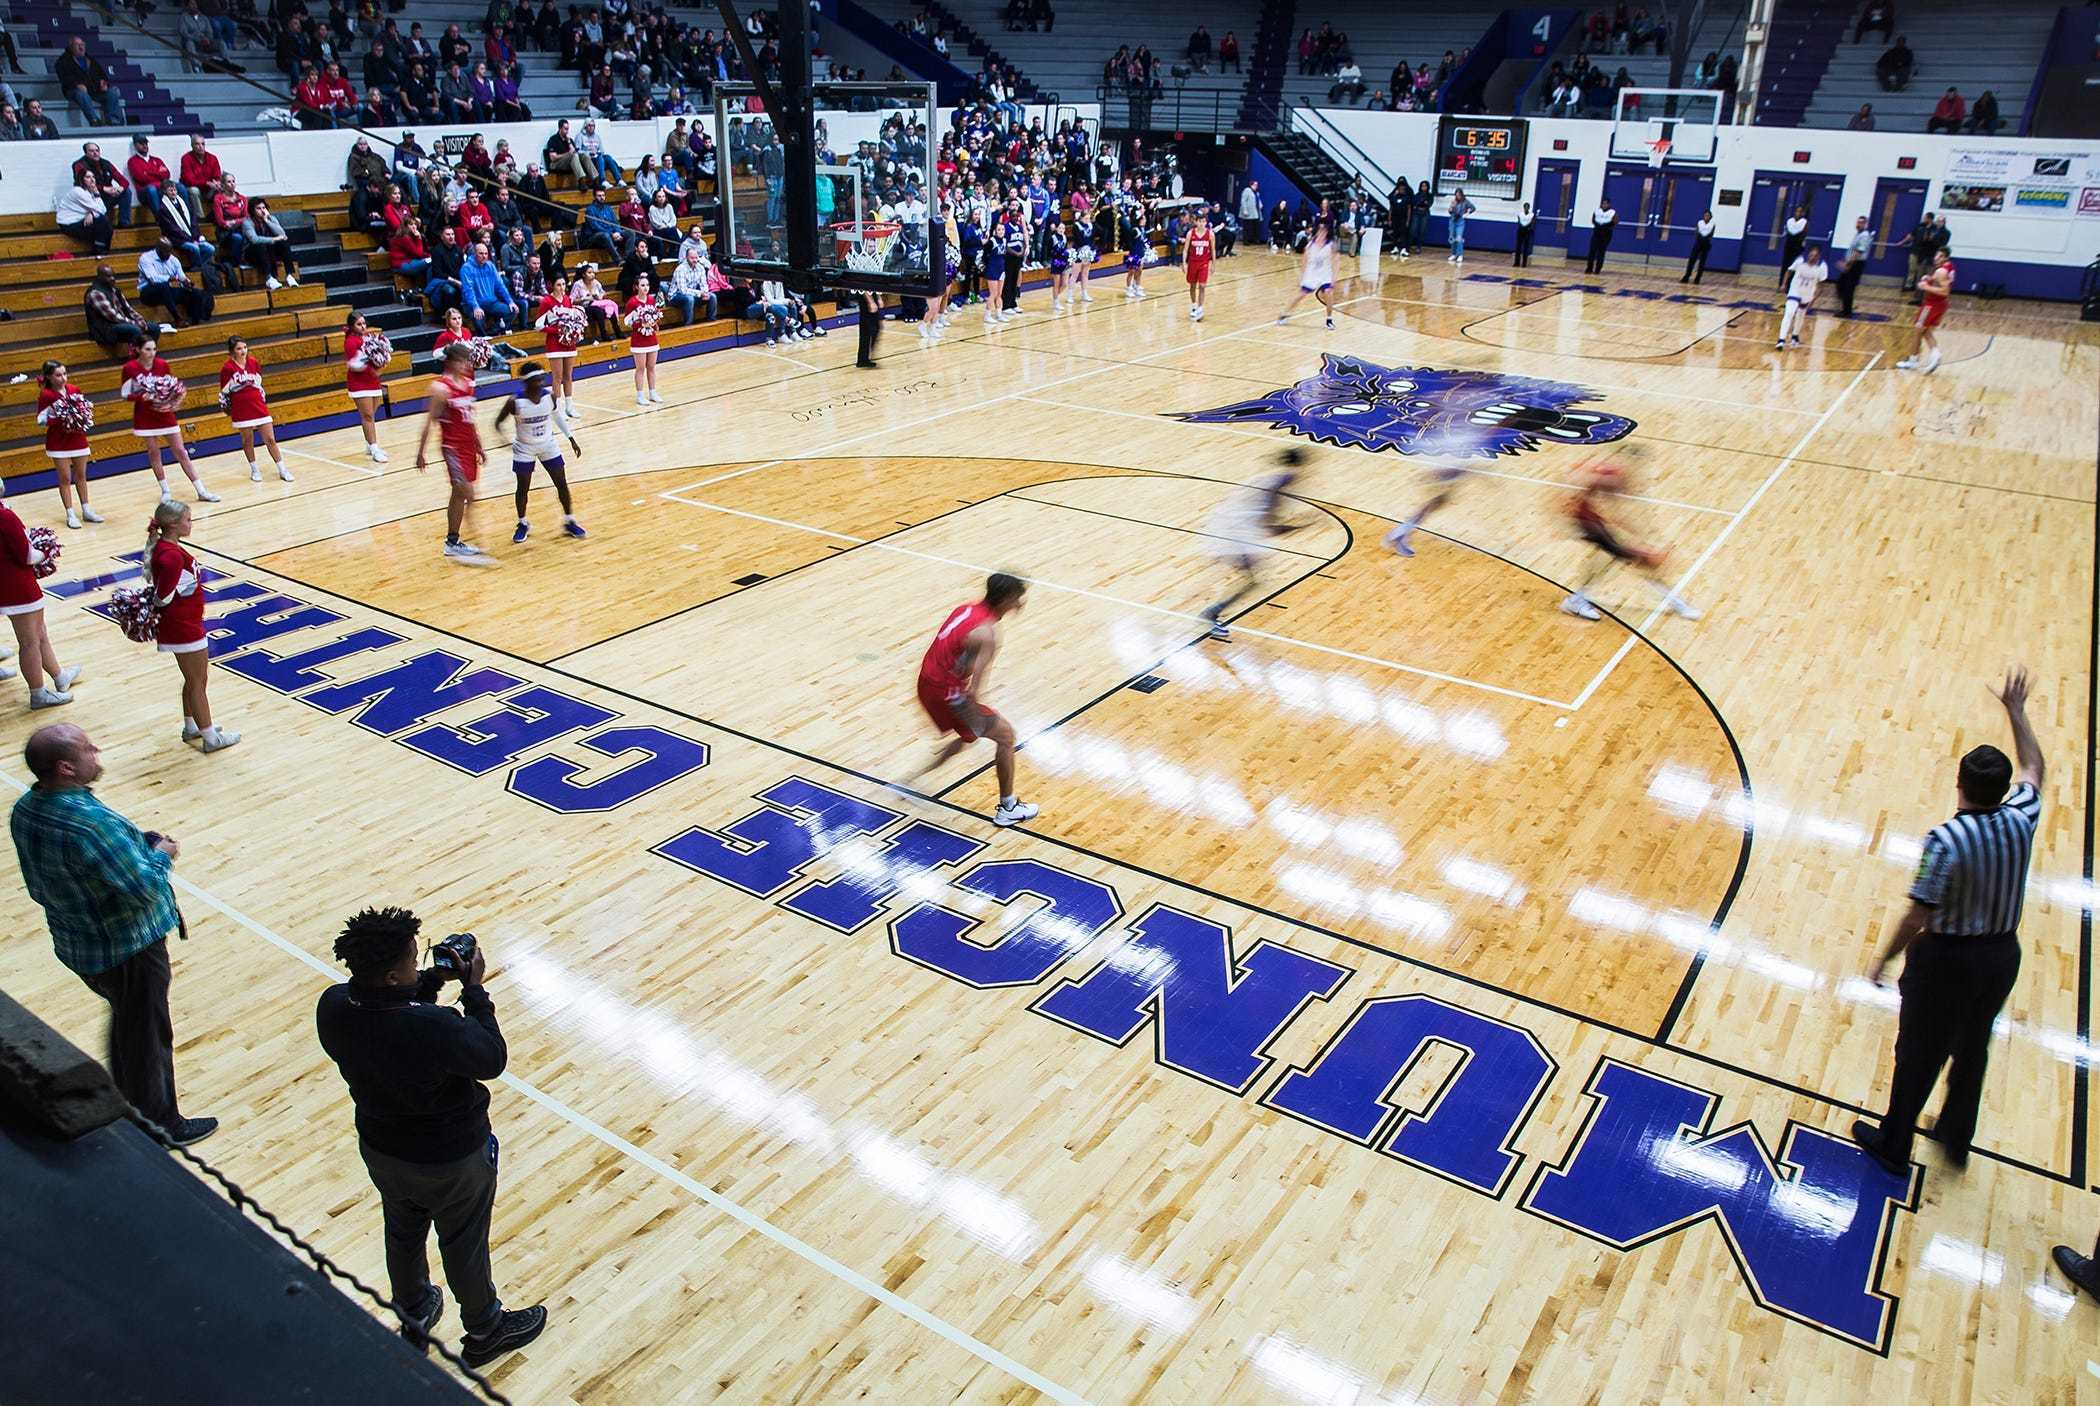 Central played for the first time in the newly reopened Muncie Fieldhouse Tuesday evening.